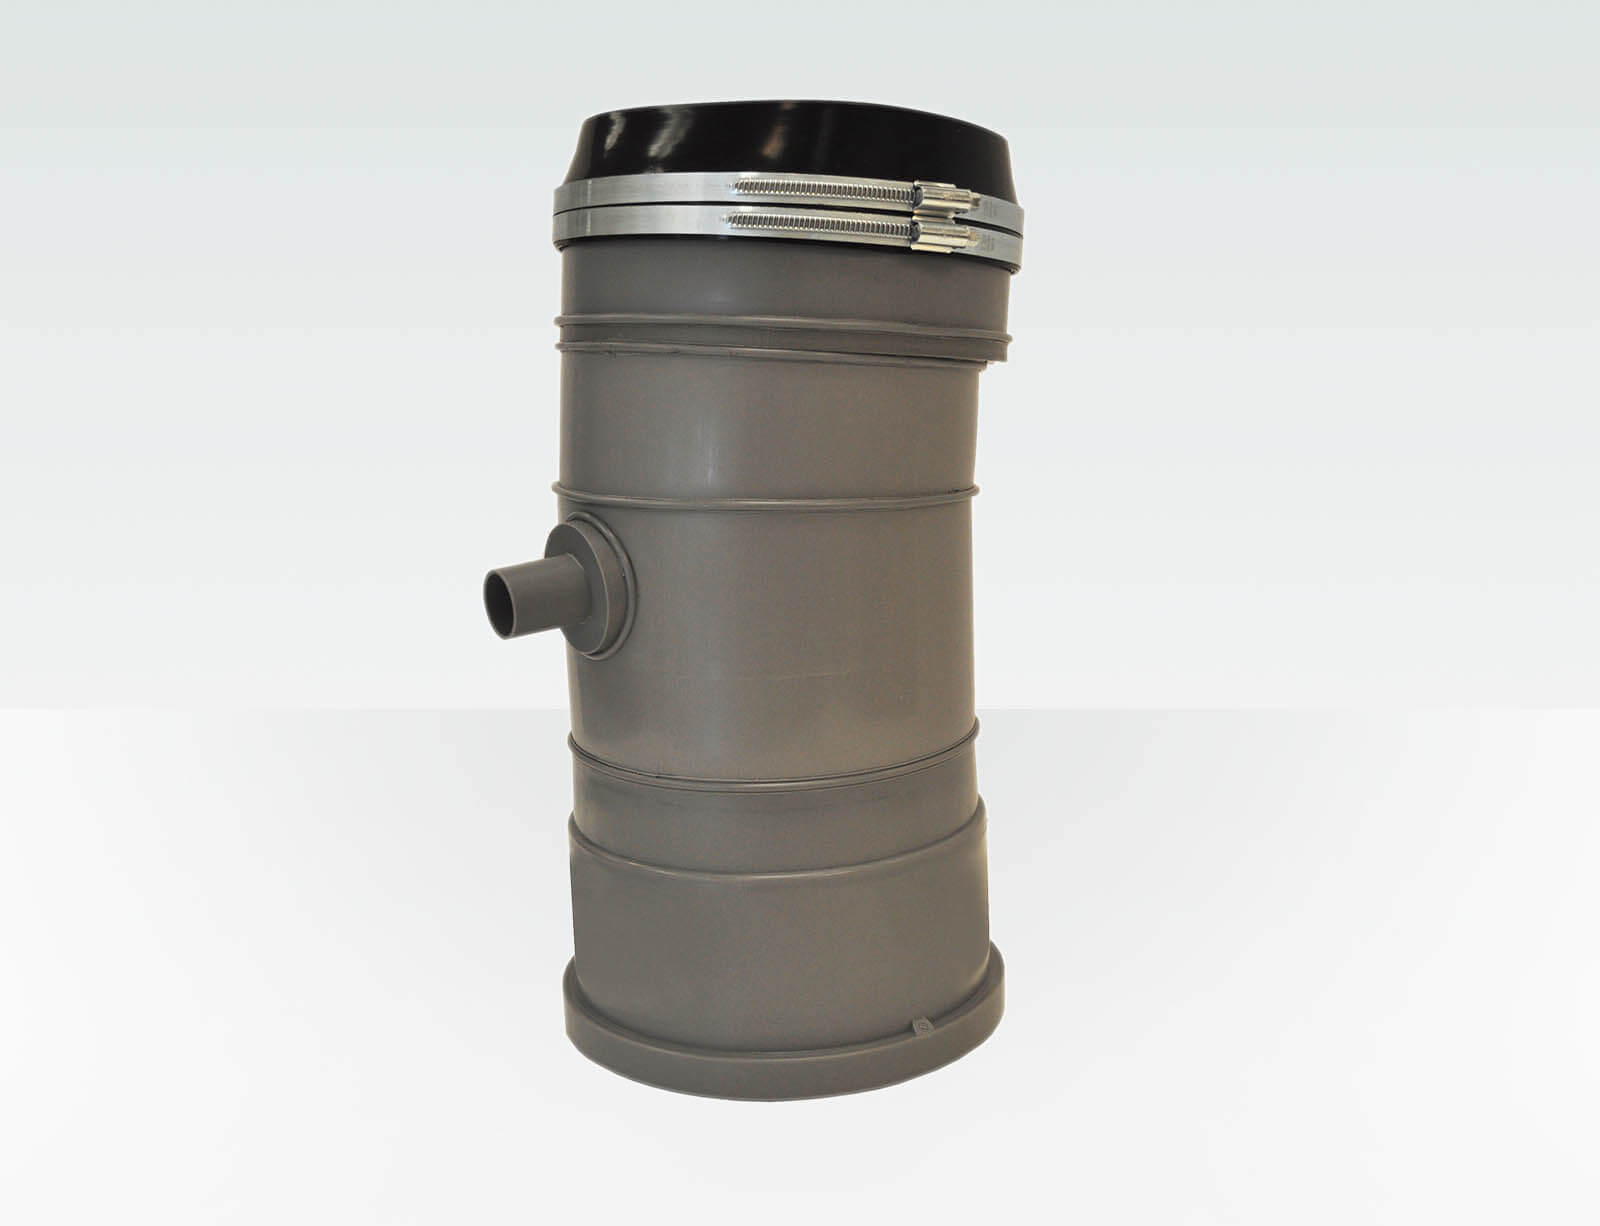 productfoto Commercial Appliance Adaptor w/ Condensate Drain and Vibration Isolation Boot